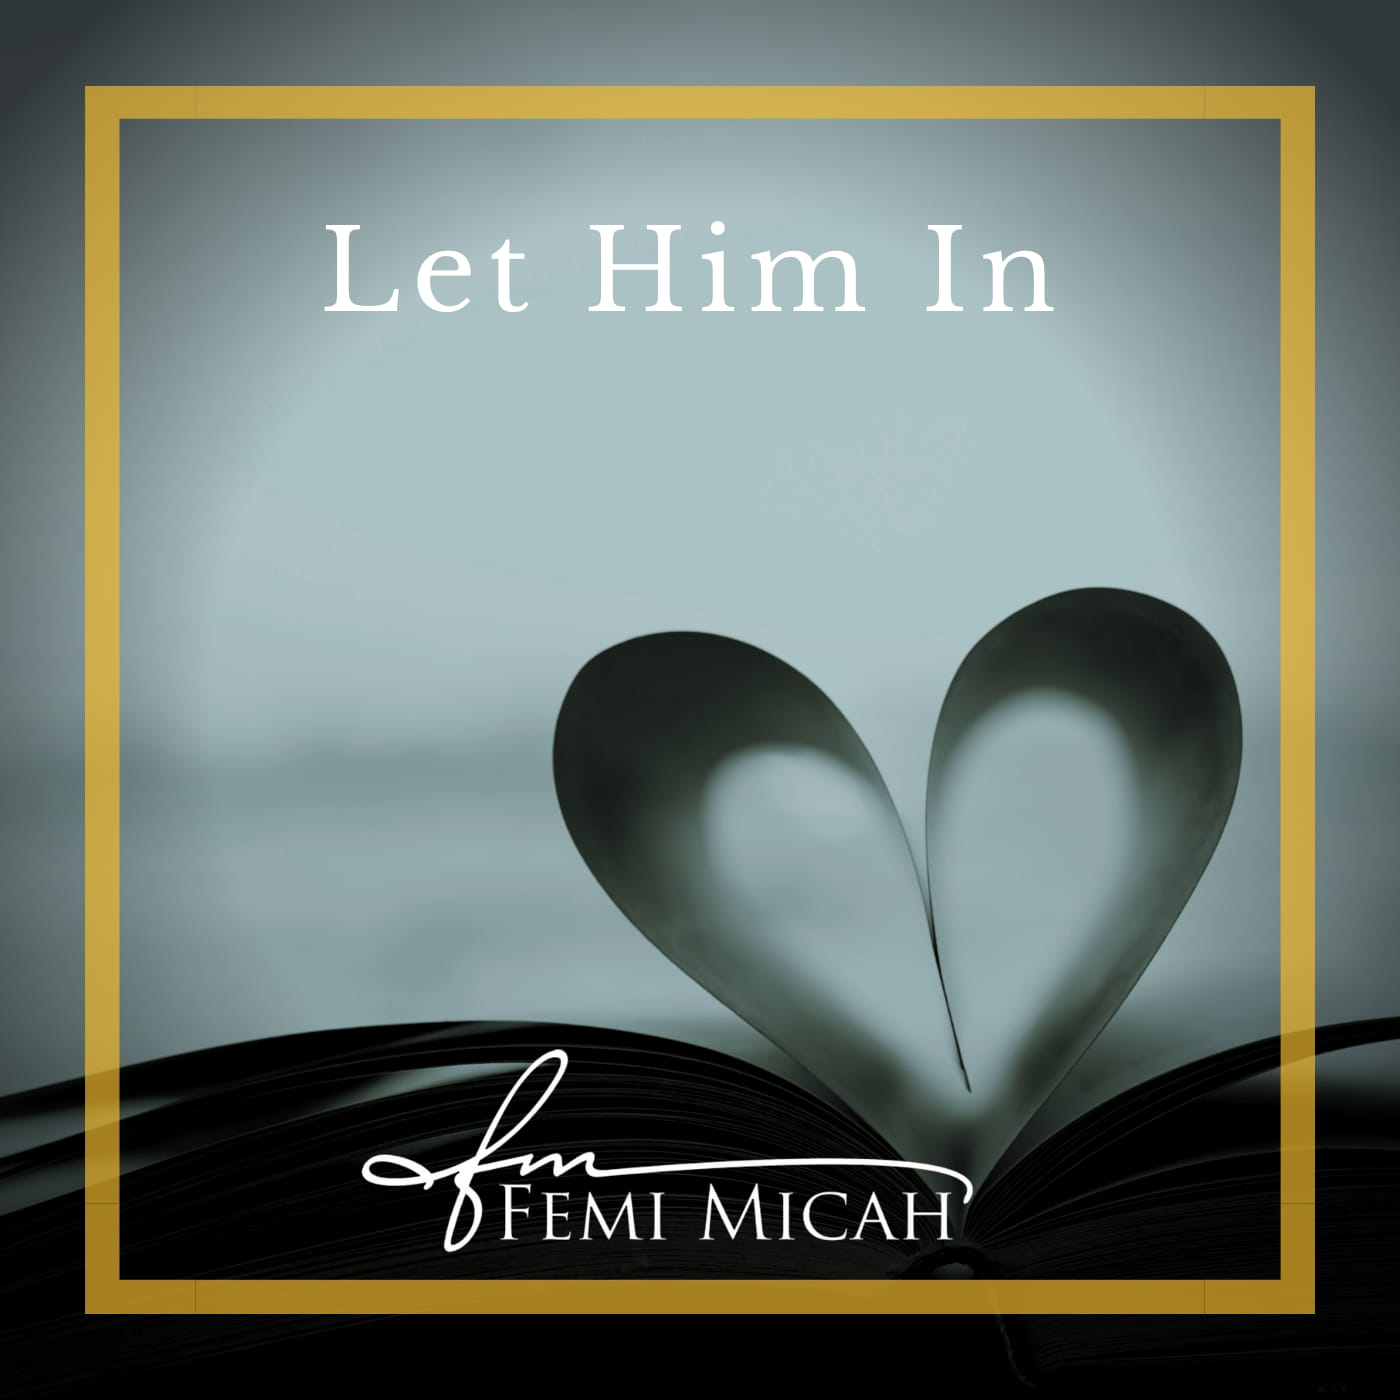 Femi Micah - Let Him In